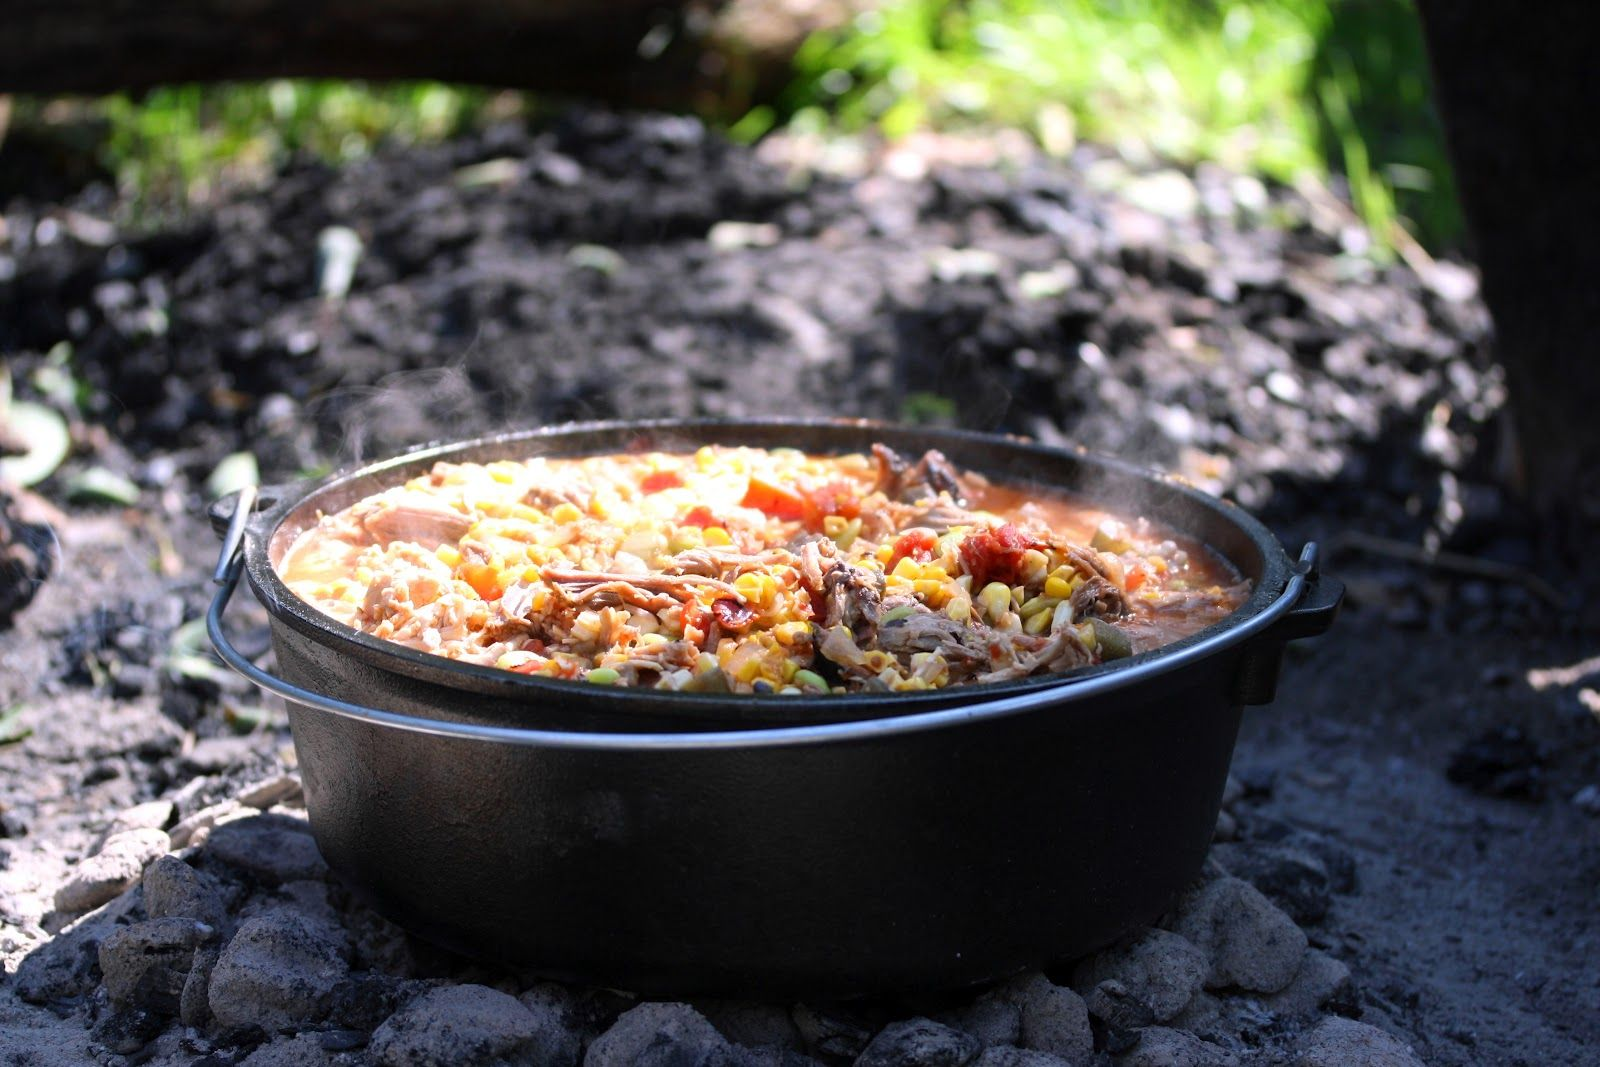 Brunswick Stew - tomato based stew with lima beans, okra, corn & vegetables with a variety of smoked meats cooked over hot coals in a Lodge Dutch Oven.